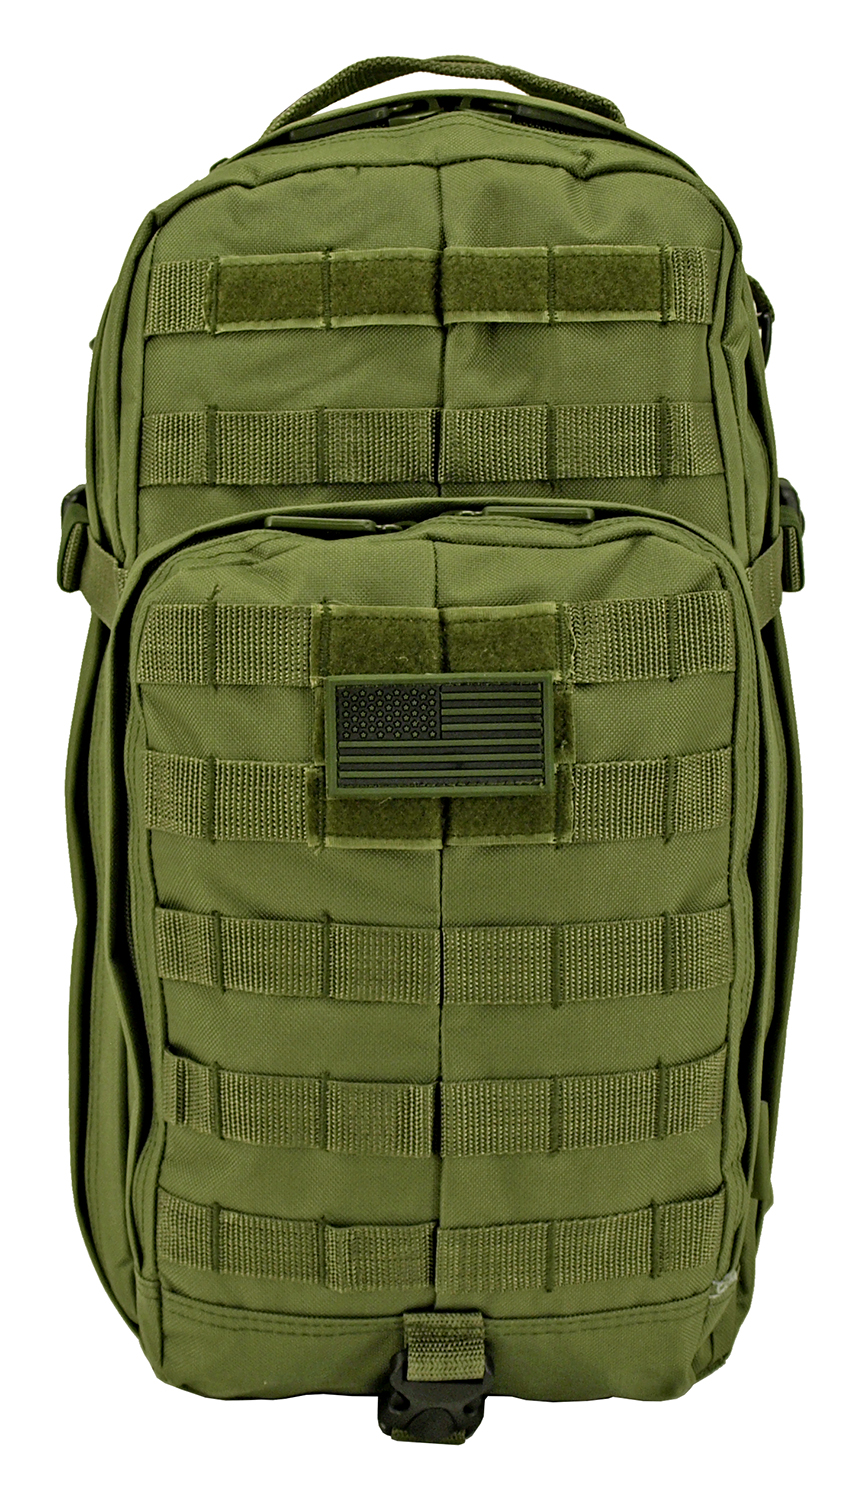 Tactical Rover Sling Bag - Olive Green